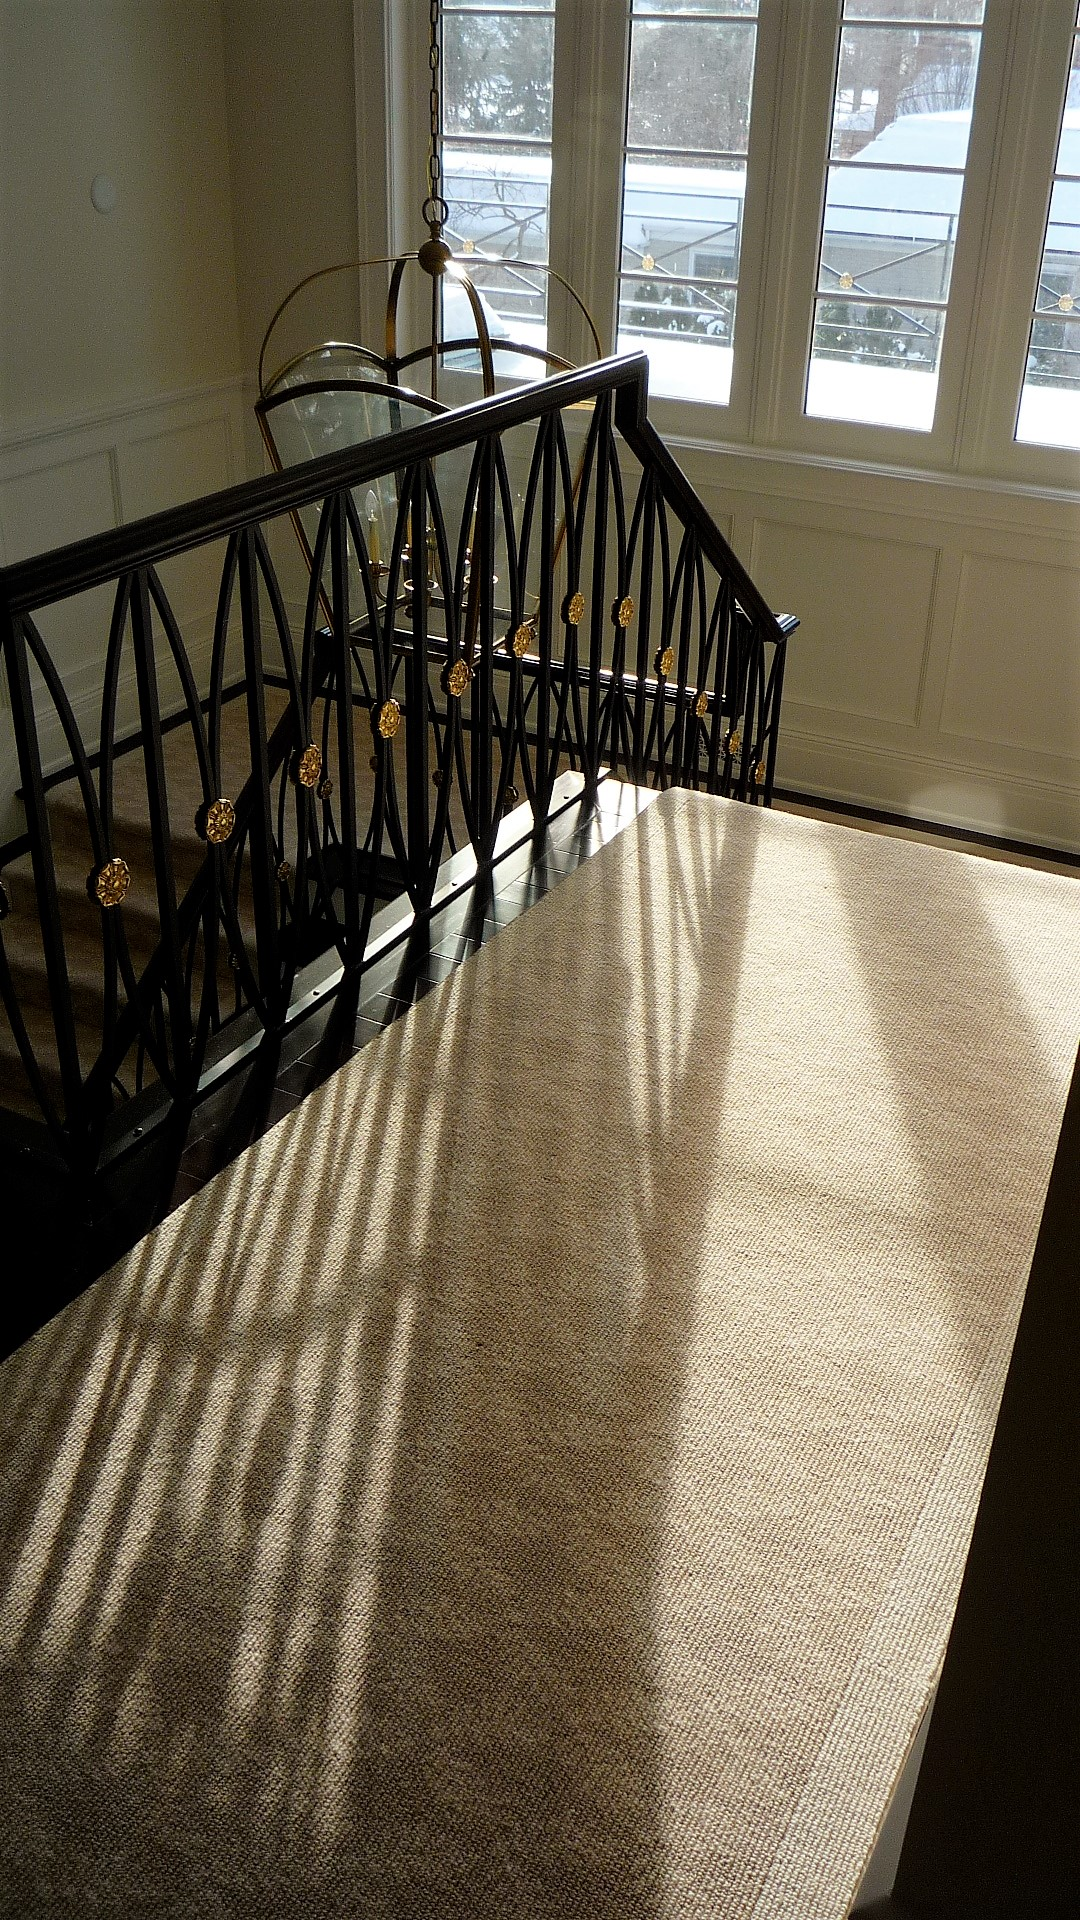 Living area hardwood stairs carpet runner white.jpg